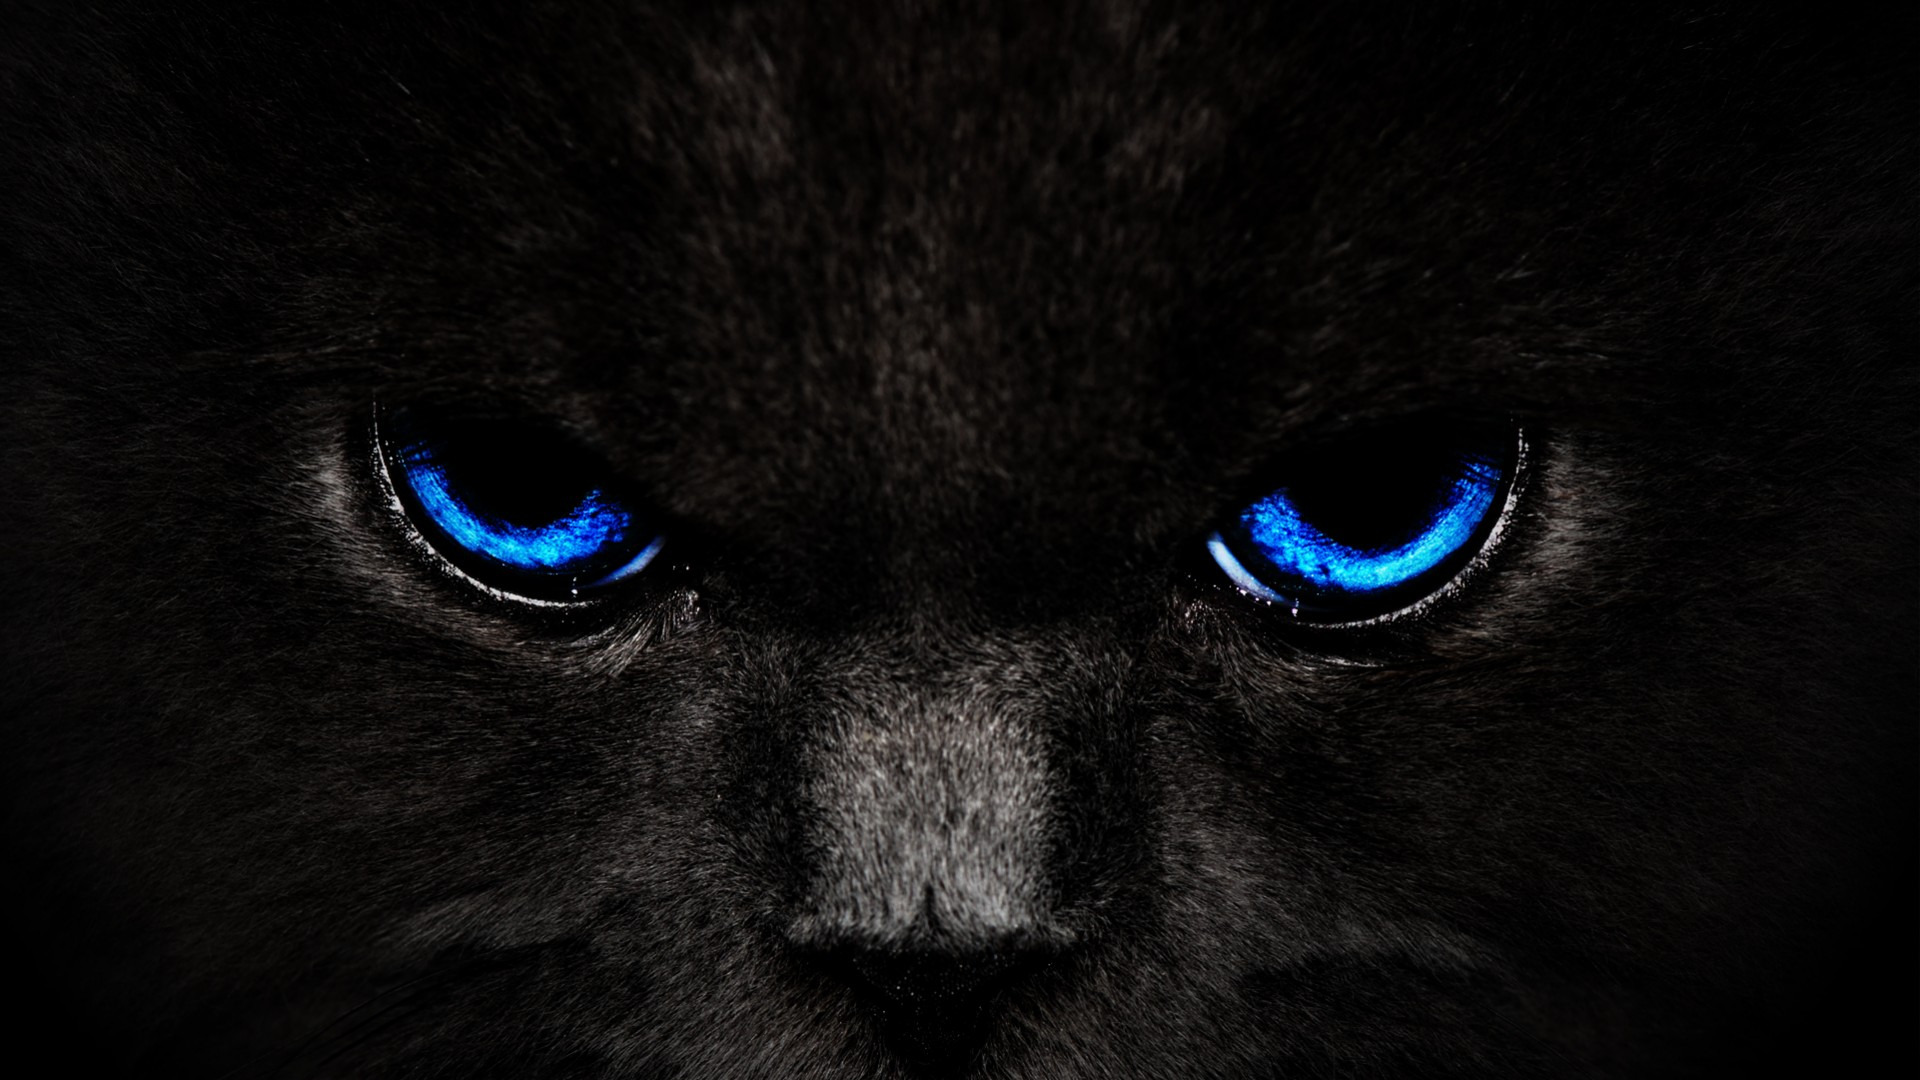 HD Wallpapers 187 Black Cat Blue Eyes Wallpaper 1920x1080